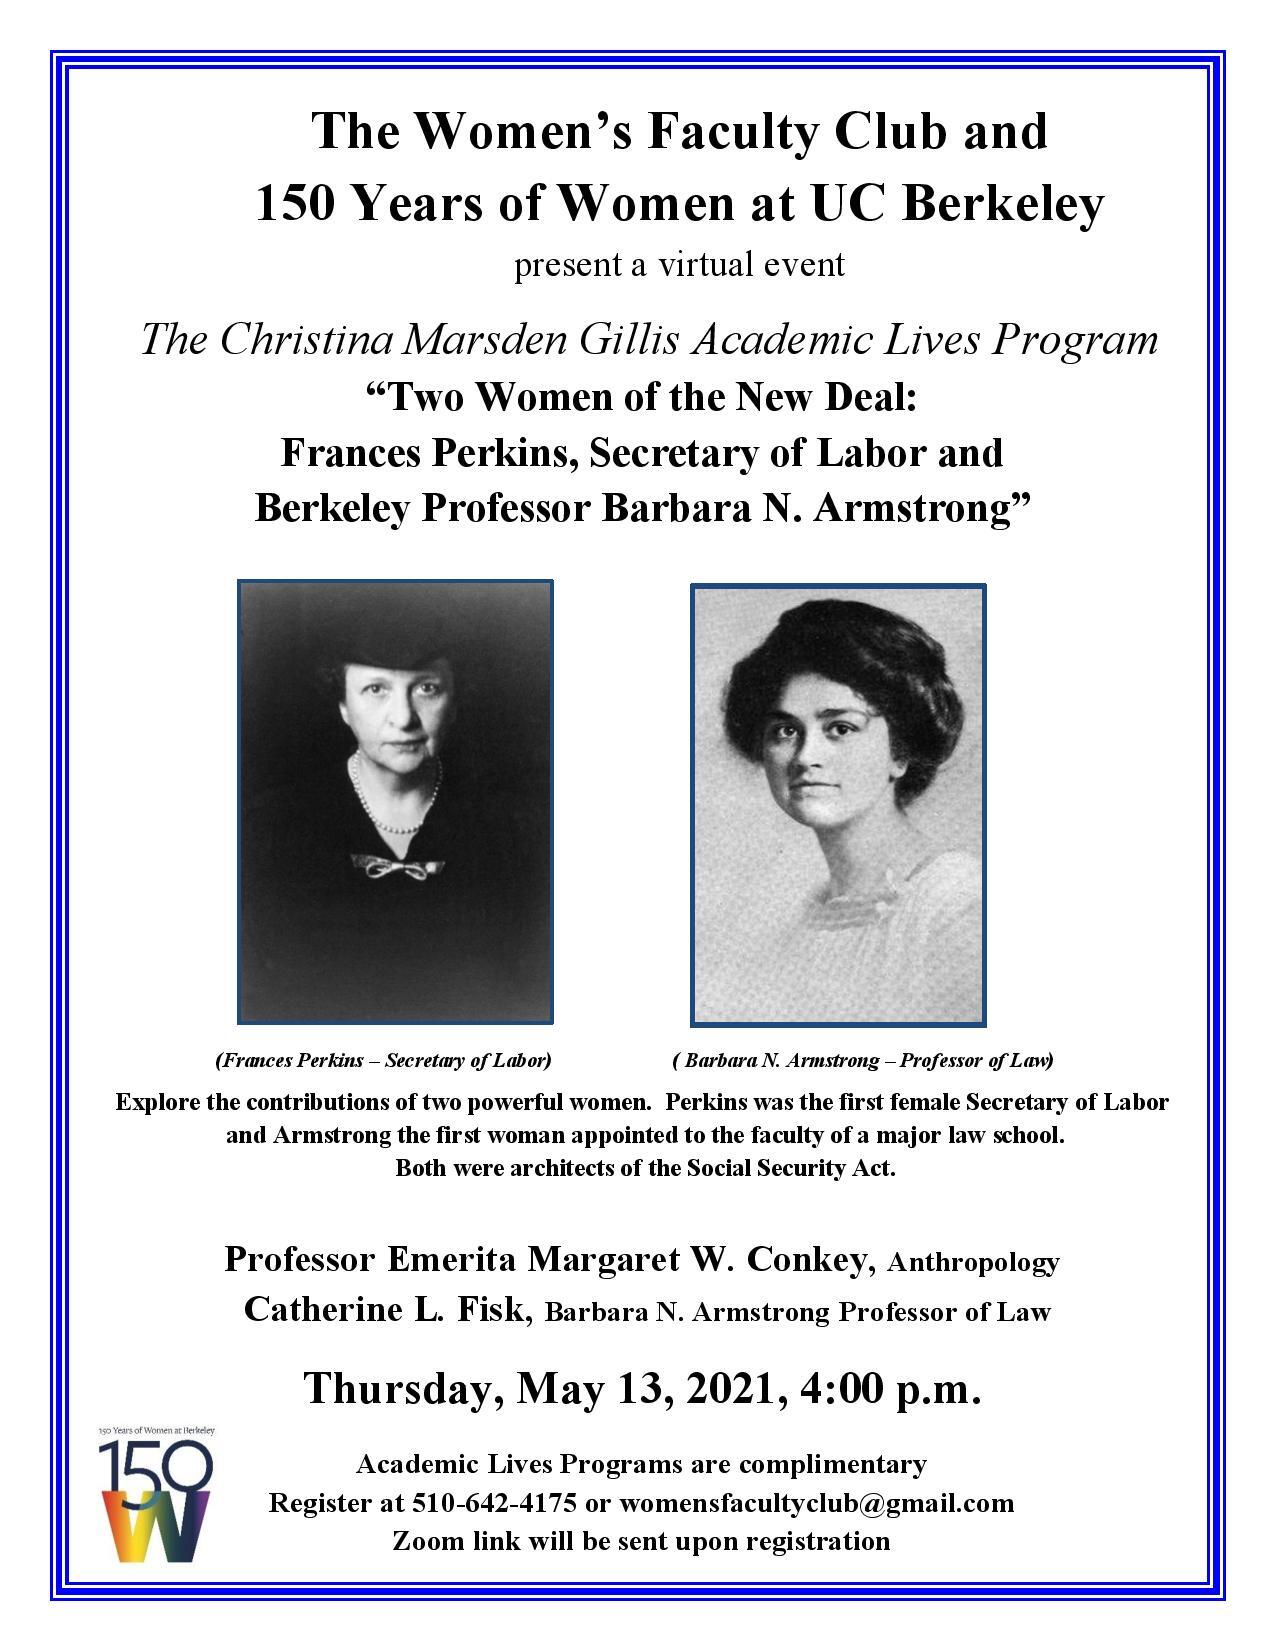 ID: flyer for Academic Lives series on Frances Perkin and Barbara Armstrong